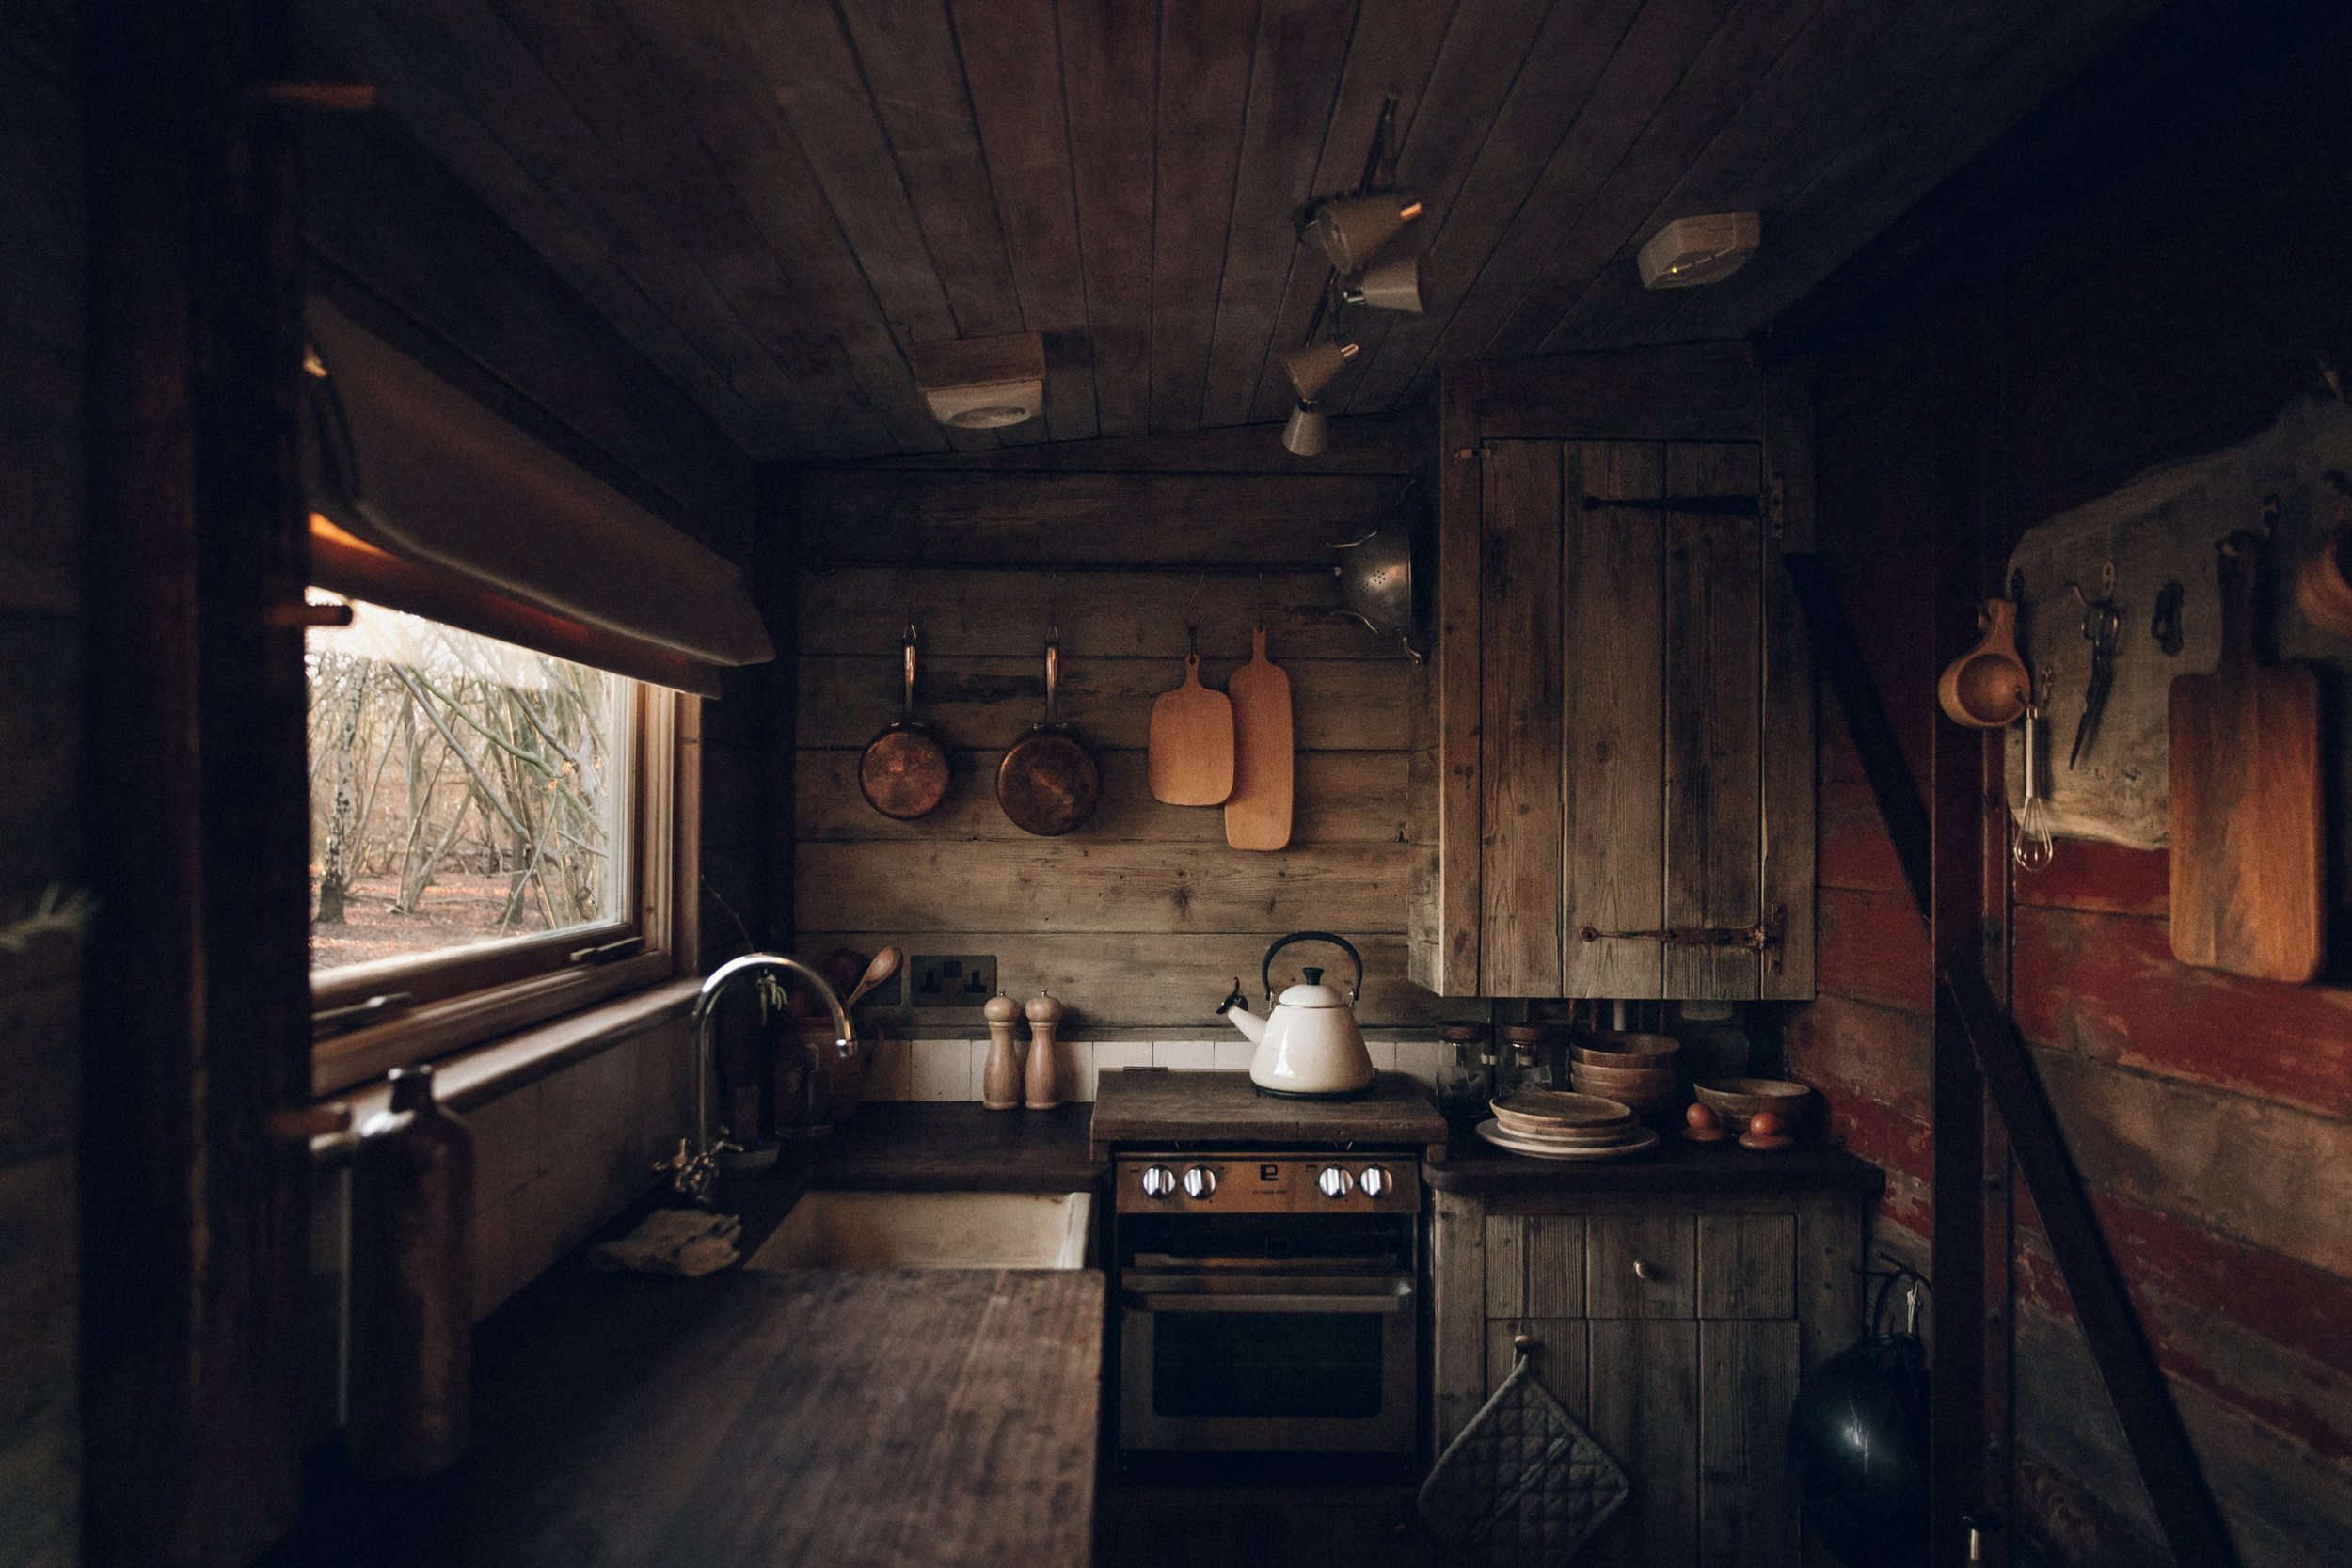 Ultimate Cozy Cabins: Rustic Retreats Made from Converted Antique Train Cars